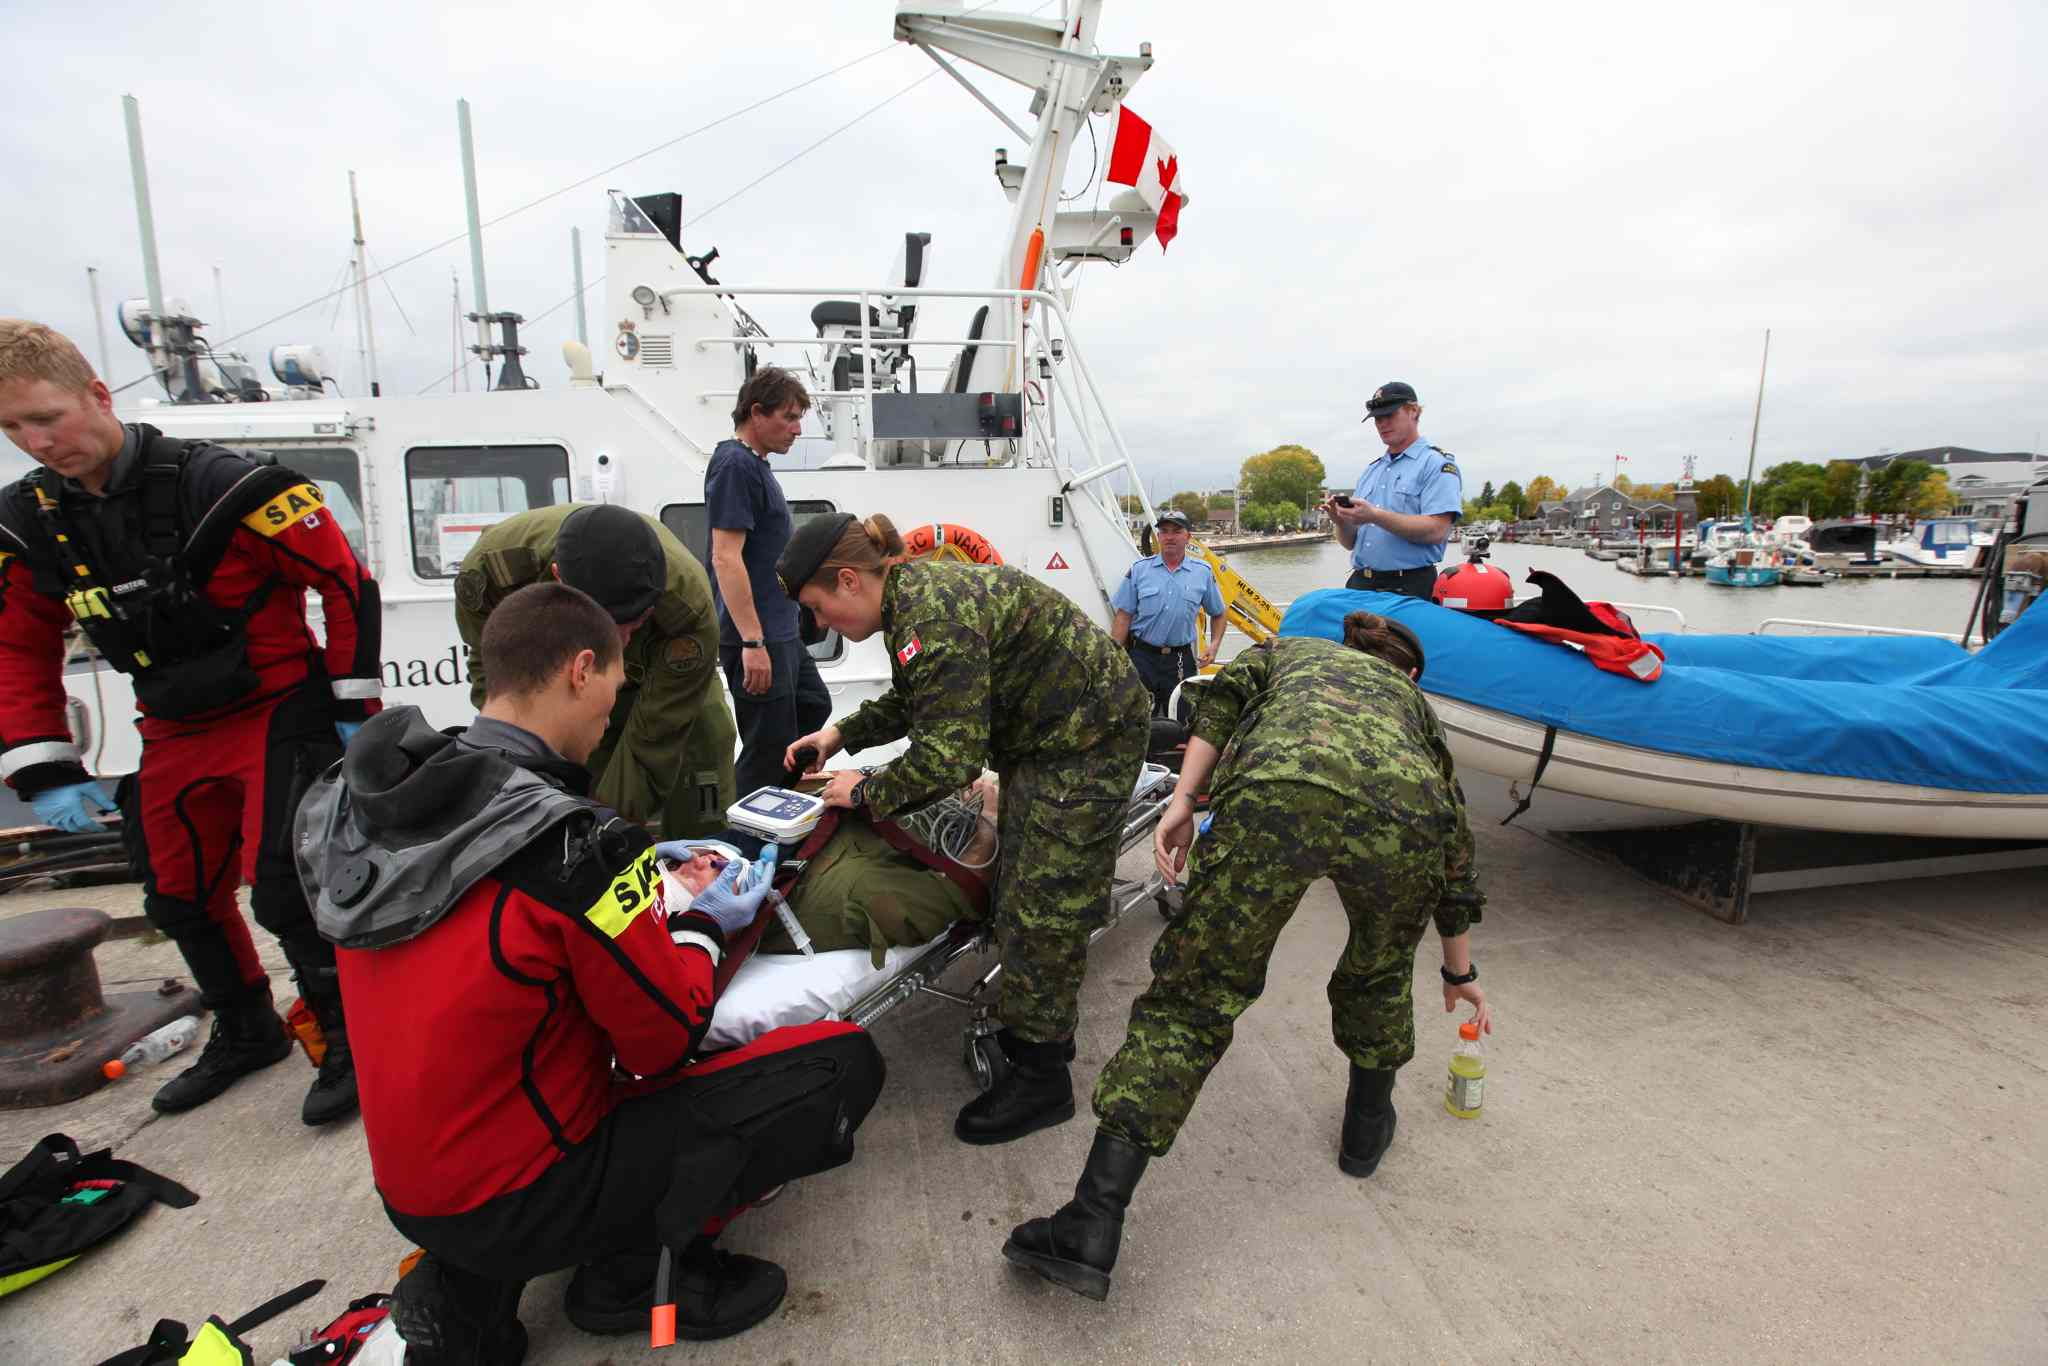 As part of an exercise, SAREX Marine Rescue Search and Rescue responders had to parachute from a Hercules airplane into Lake Winnipeg near a stranded boat and climb aboard their vessel to accomplish their mission.